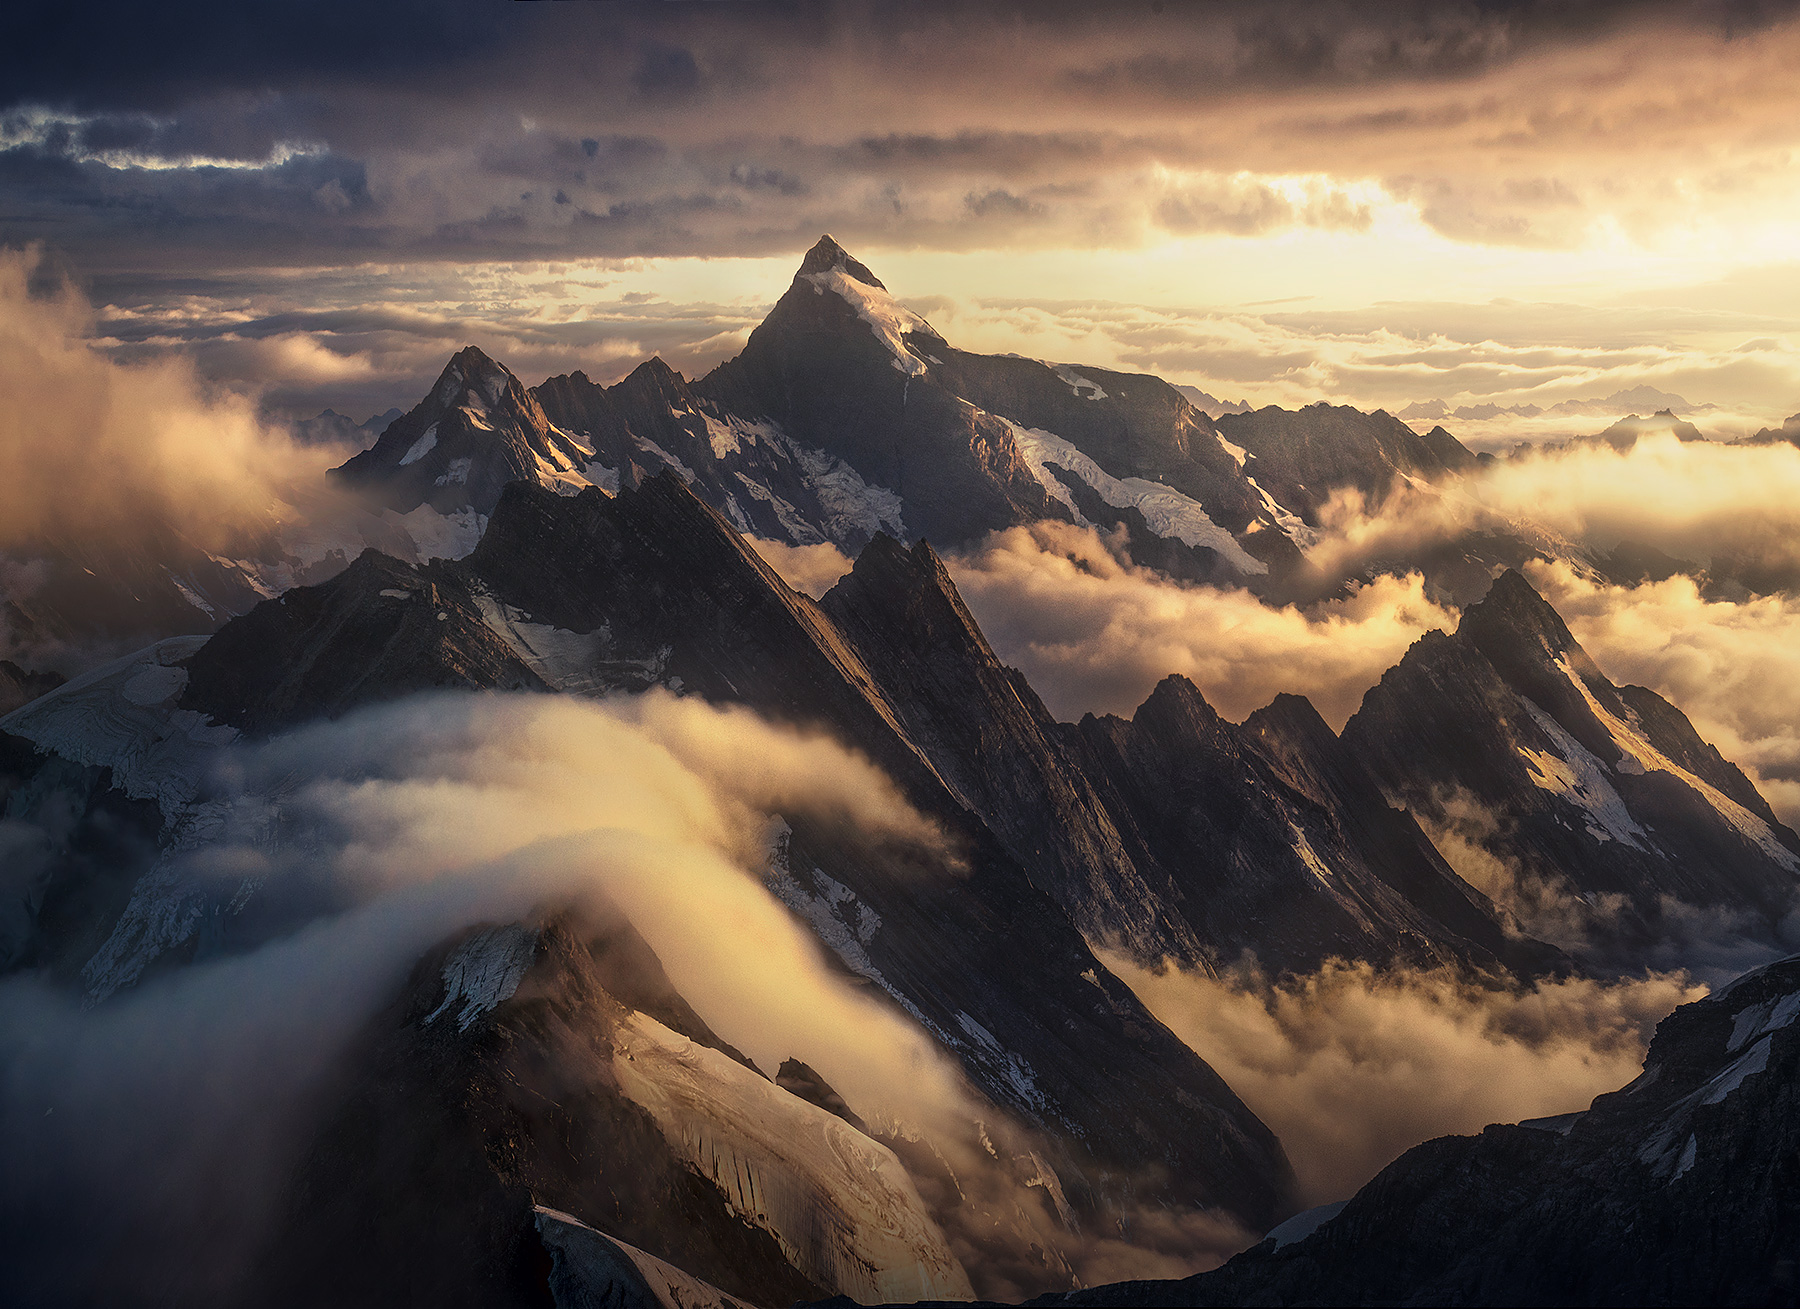 Great peaks of the high mountains of New Zealand